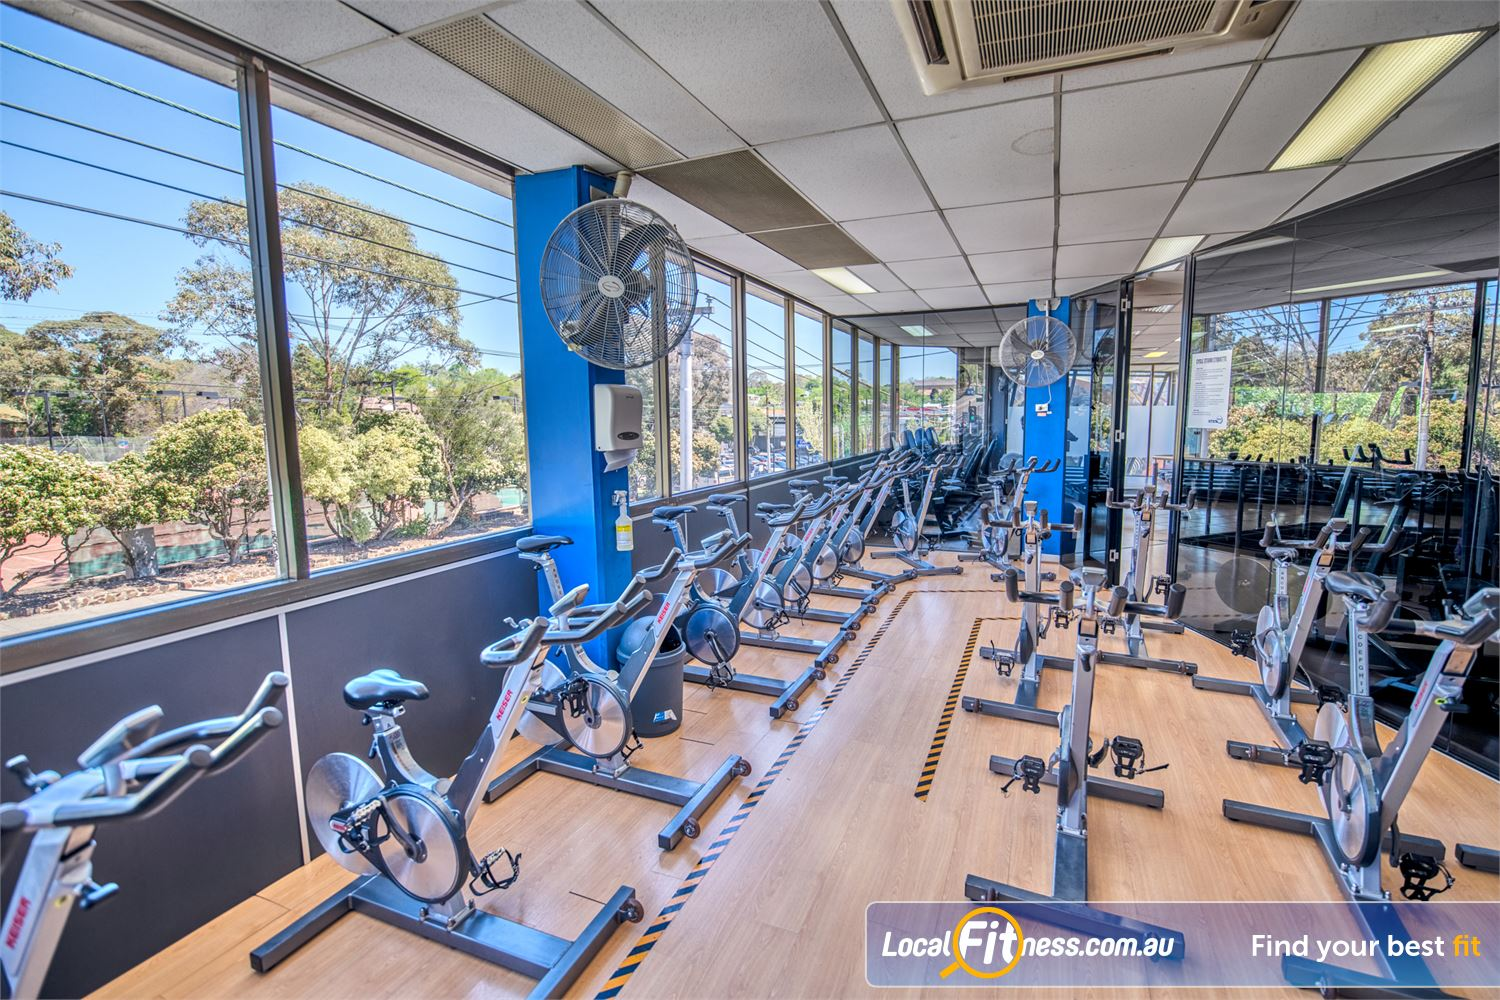 Goodlife Health Clubs Balwyn Our dedicated Balwyn spin cycle room with scenic views.